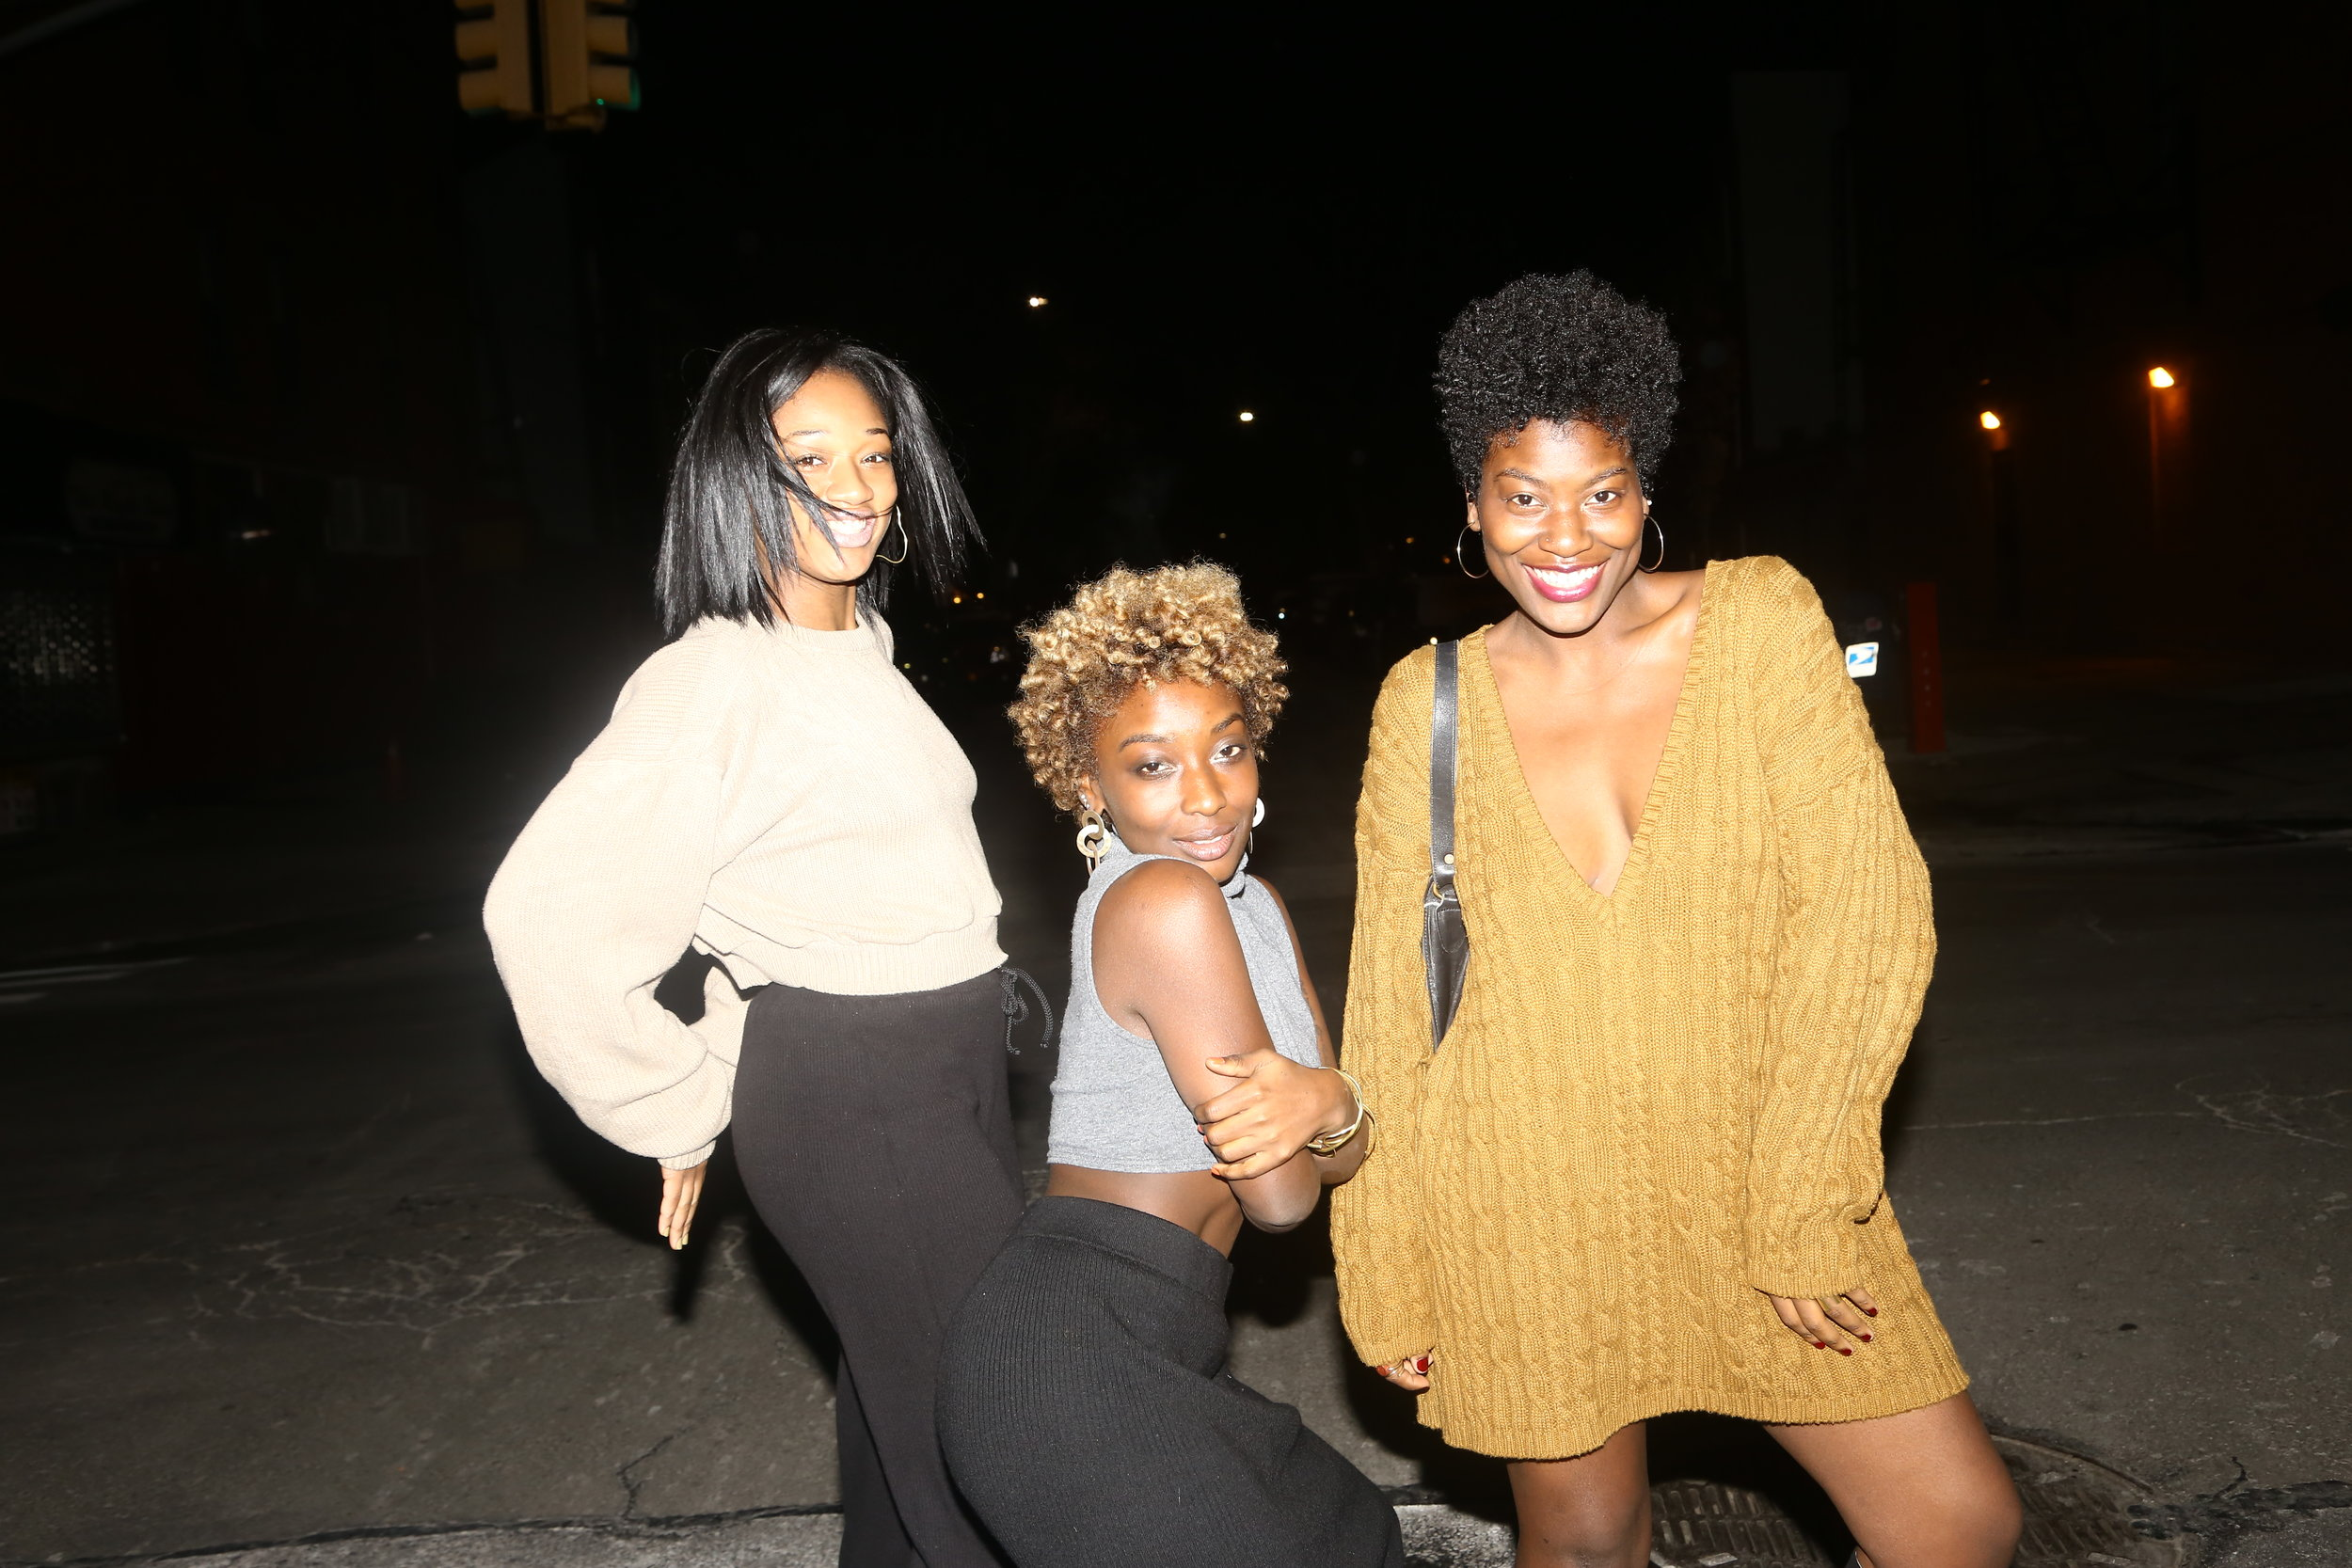 To Sade's right:her twin sister, Samantha (short blonde 'fro)